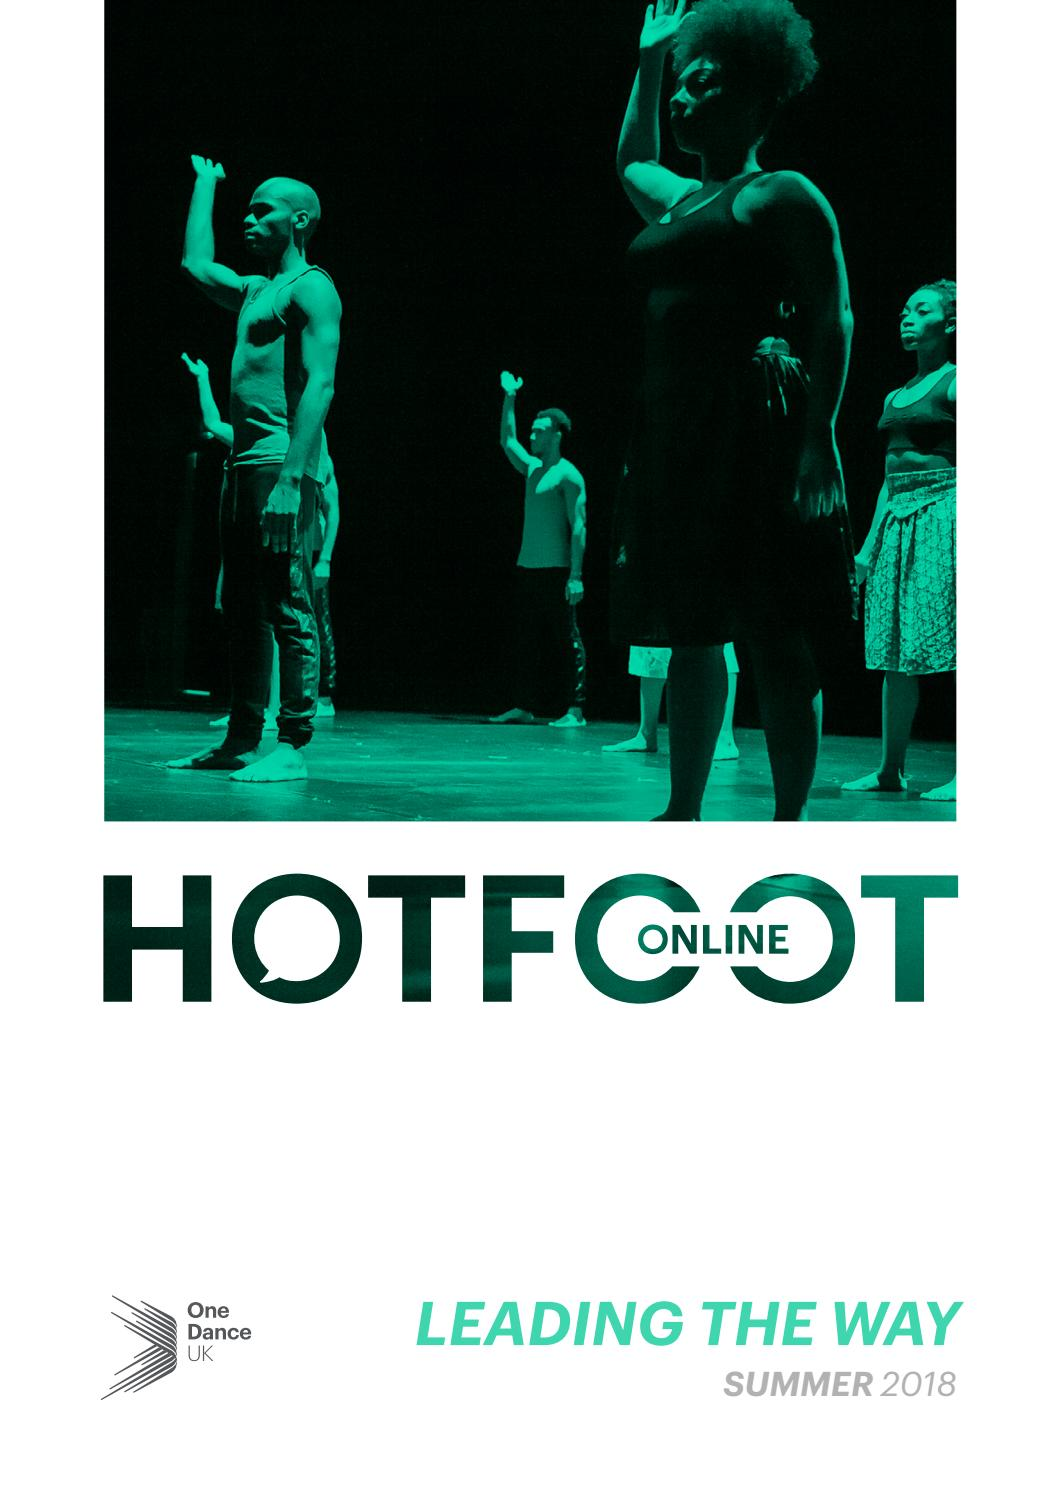 HOTFOOT Online | Summer 2018 - Leading The Way by One Dance UK - issuu